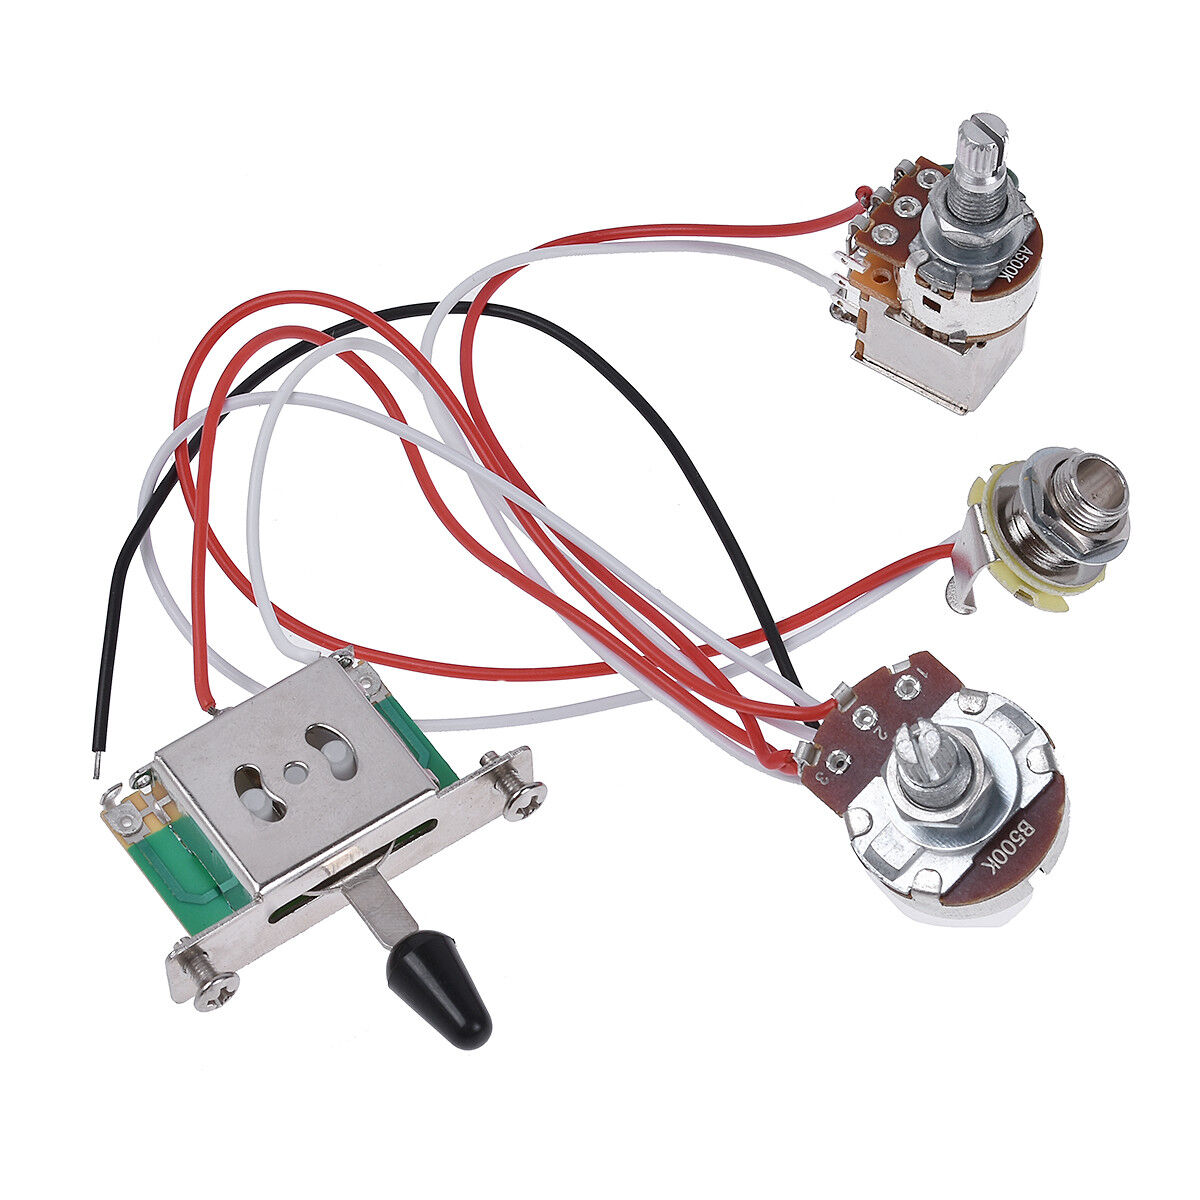 Electric Guitar Wiring Harness Prewired Kit 3 Way Toggle Switch 1v1t 500k Pots Ebay